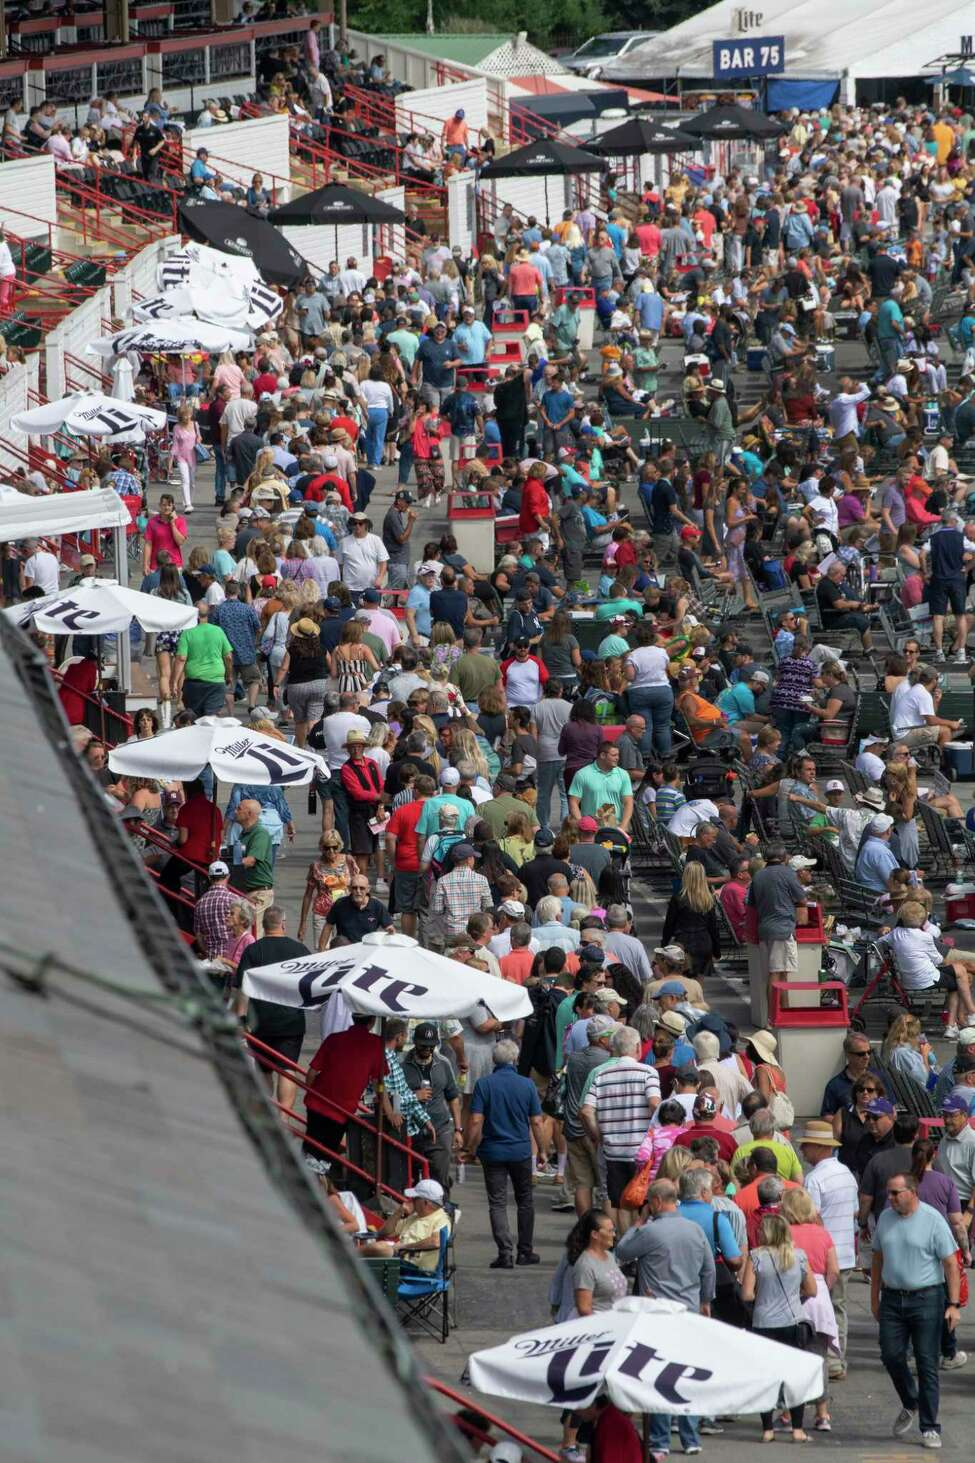 A huge line forms near the umbrellas at the Saratoga Race Course on sweatshirt giveaway day Sunday Sept. 1, 2019 in Saratoga Springs, N.Y. Photo Special to the Times Union by Skip Dickstein